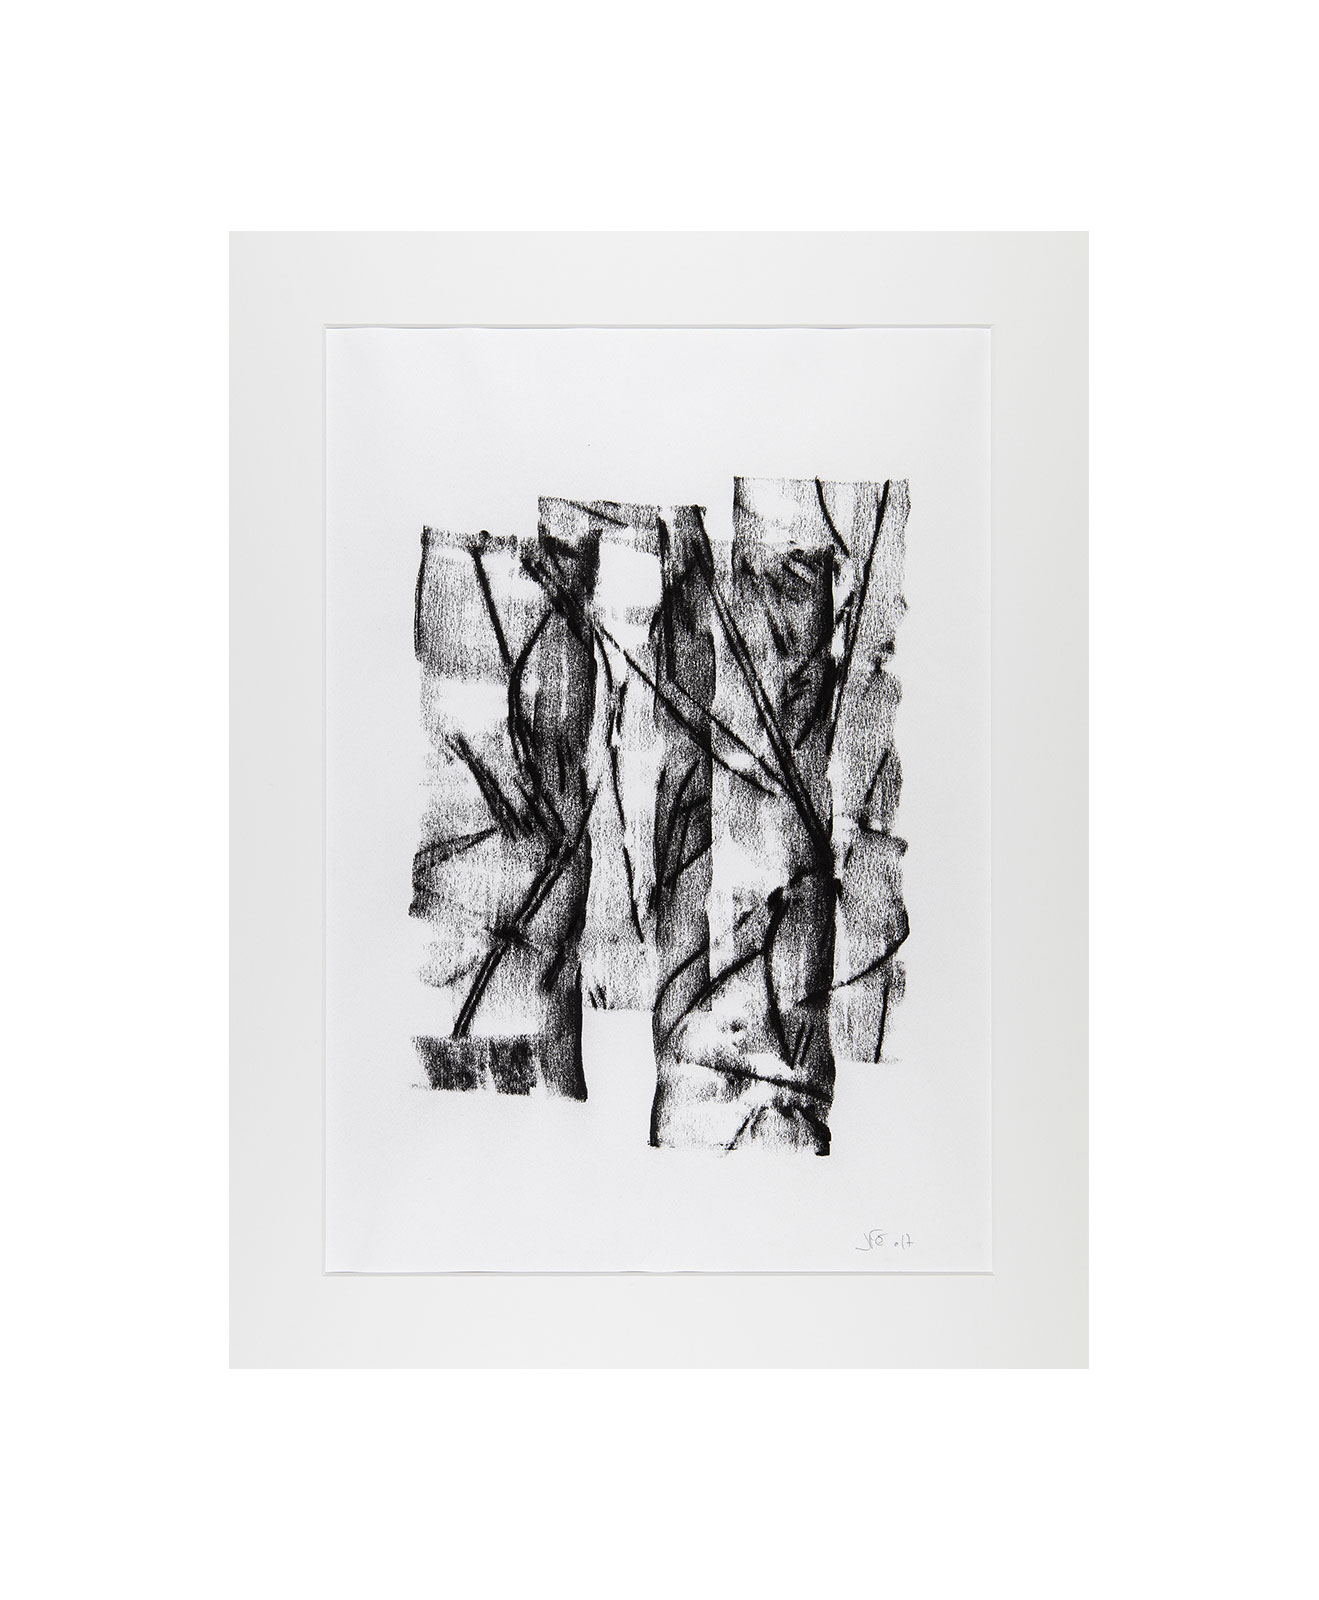 Cha 1.22, Charcoal on paper, black and white artwork, drawing, jf escande, contemporary art